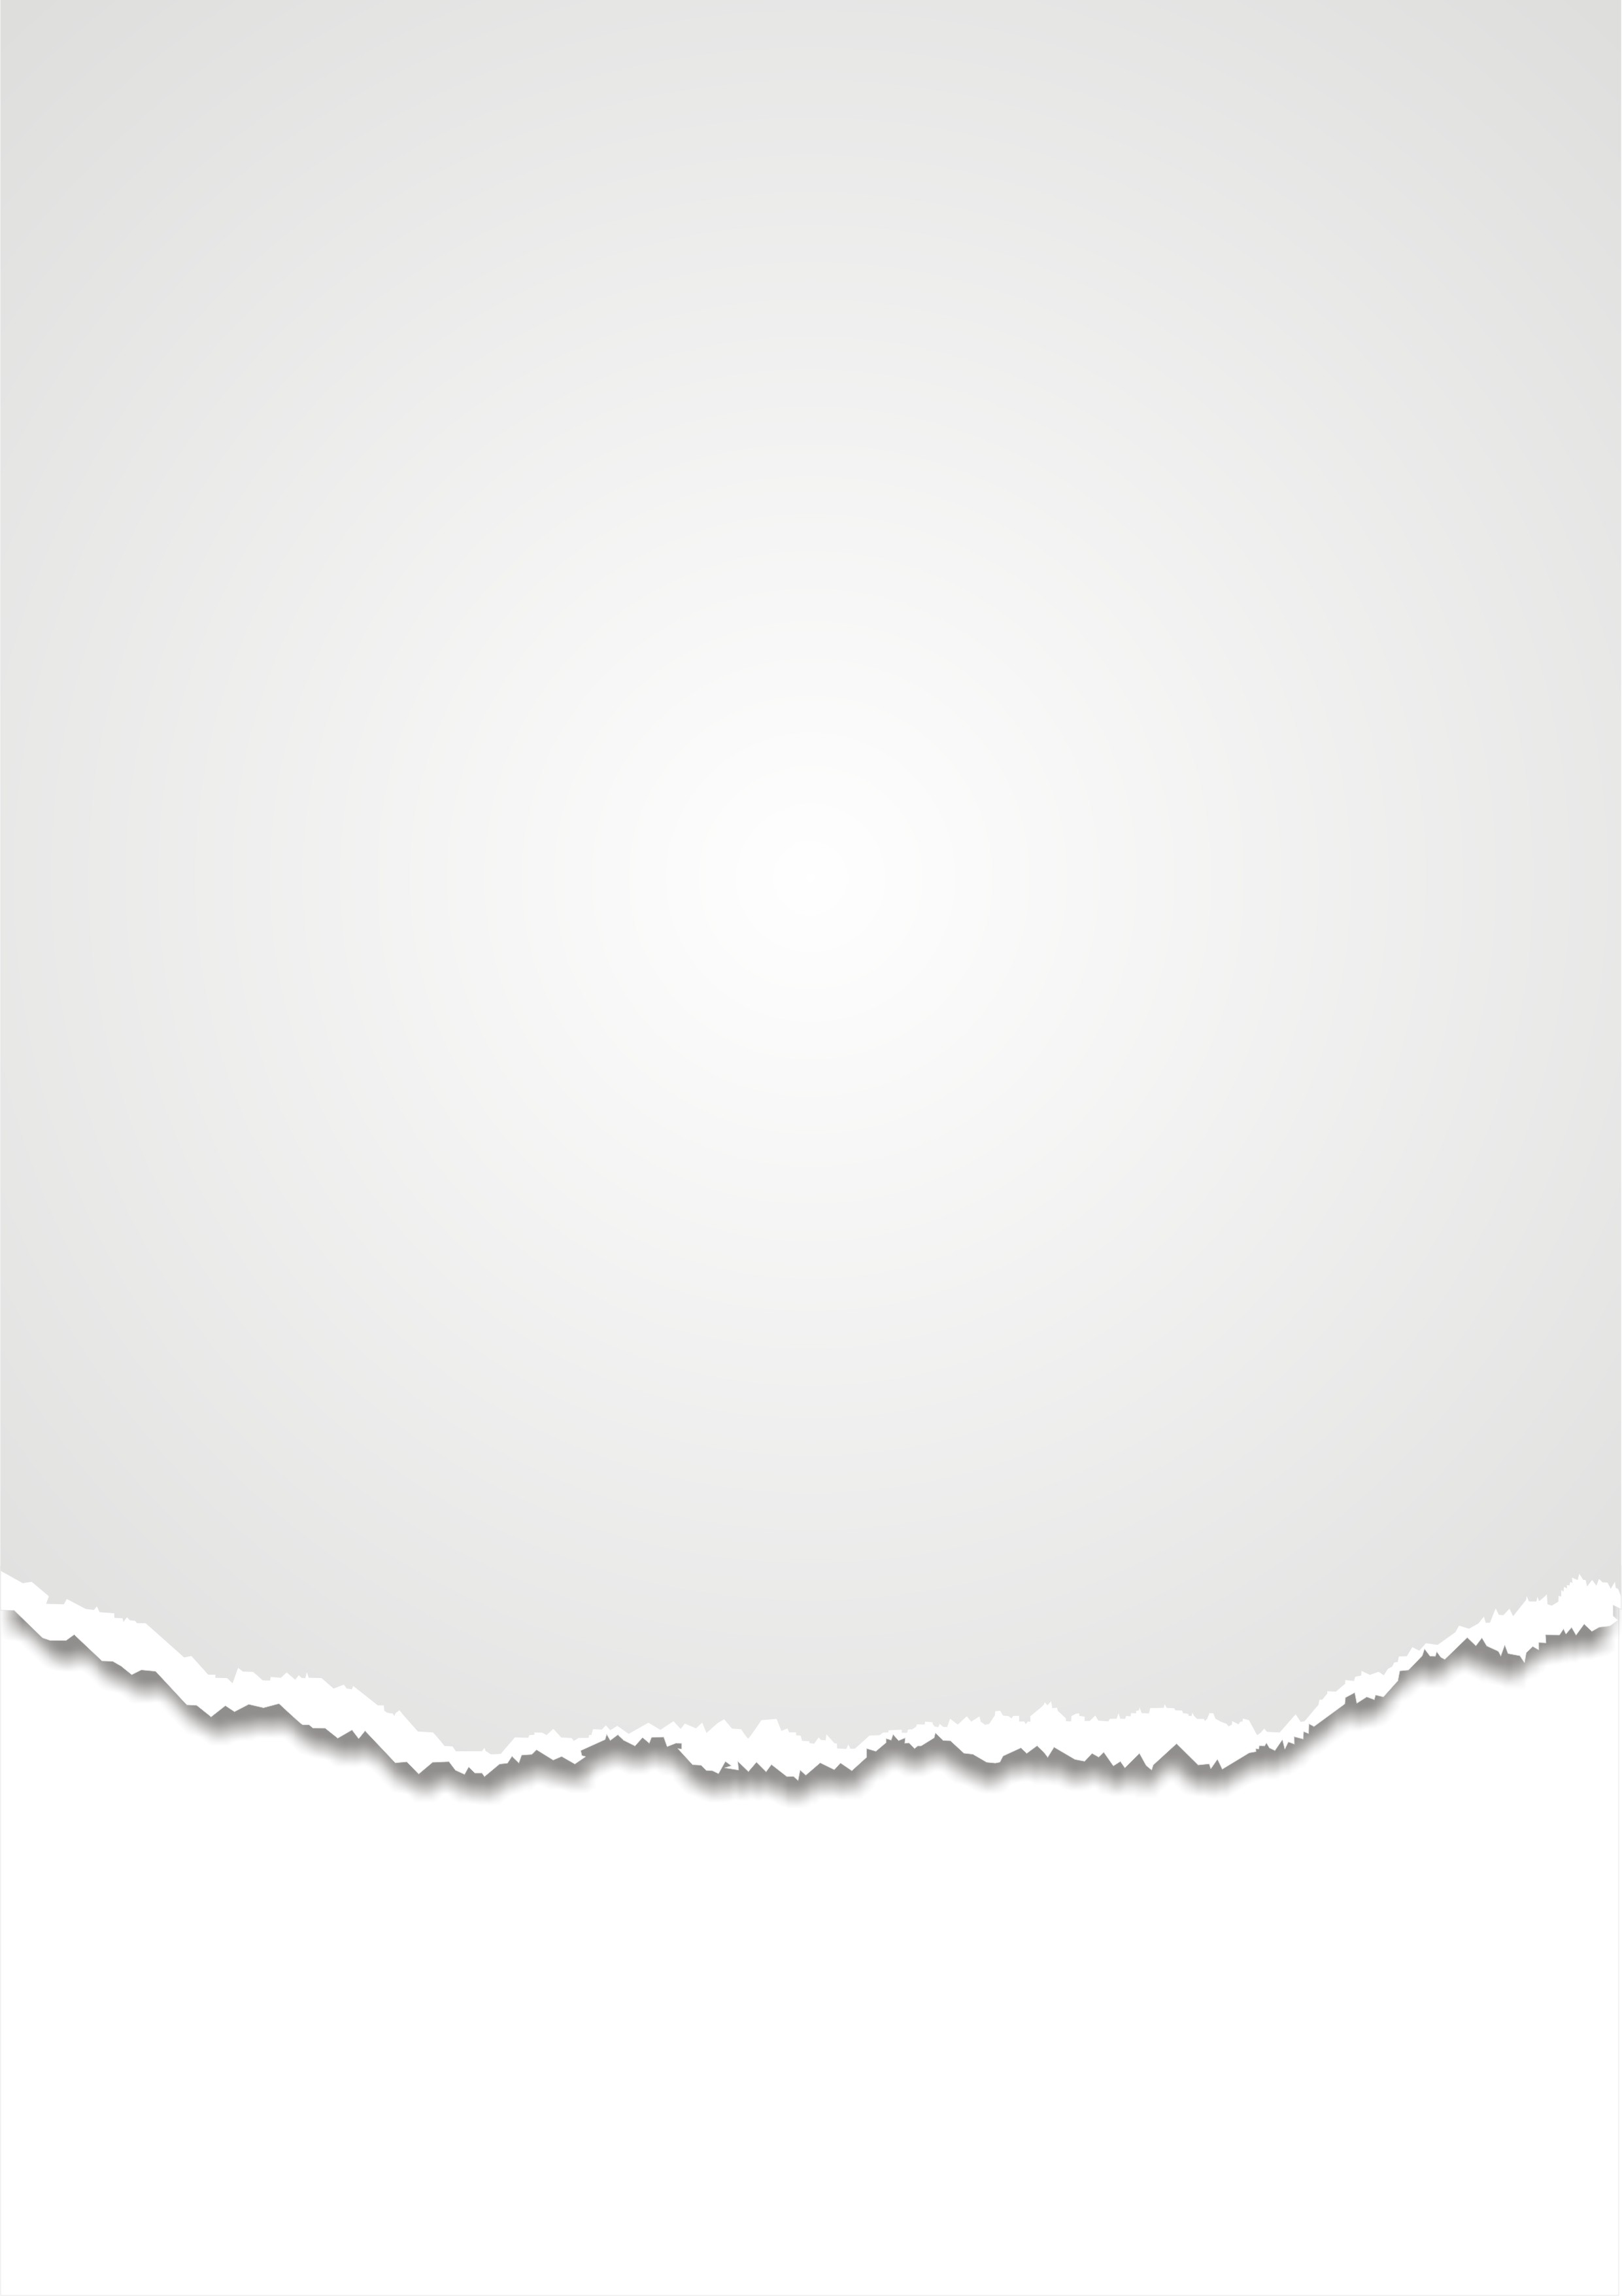 Free Paper Tear Effect Png, Download Free Clip Art, Free.